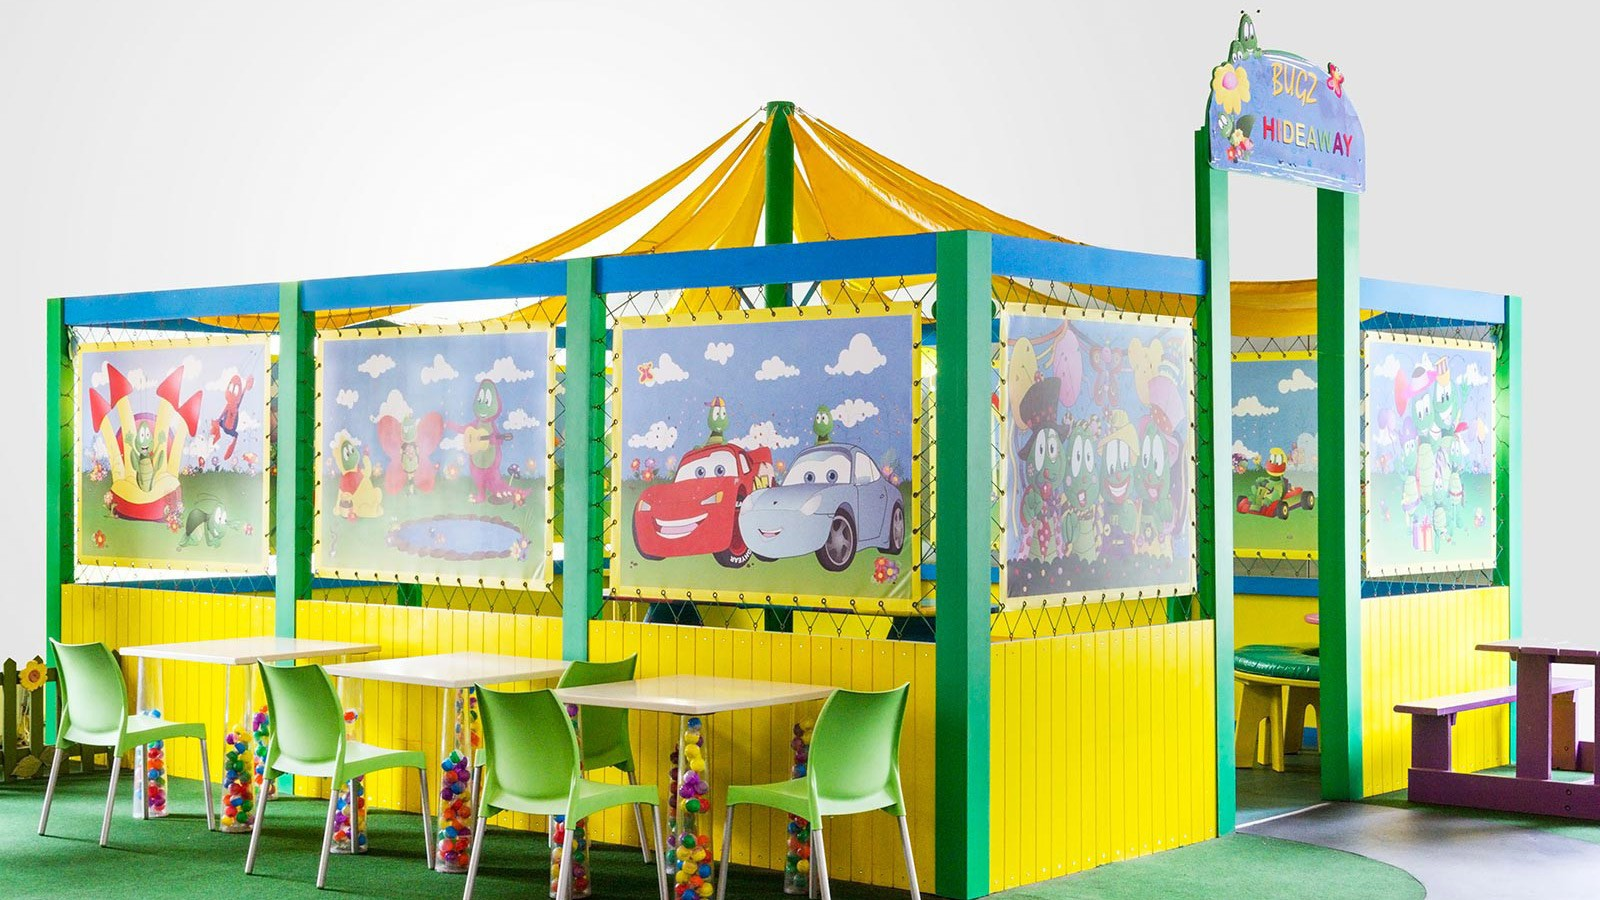 Kids party venues at Bugz Family Plapark.